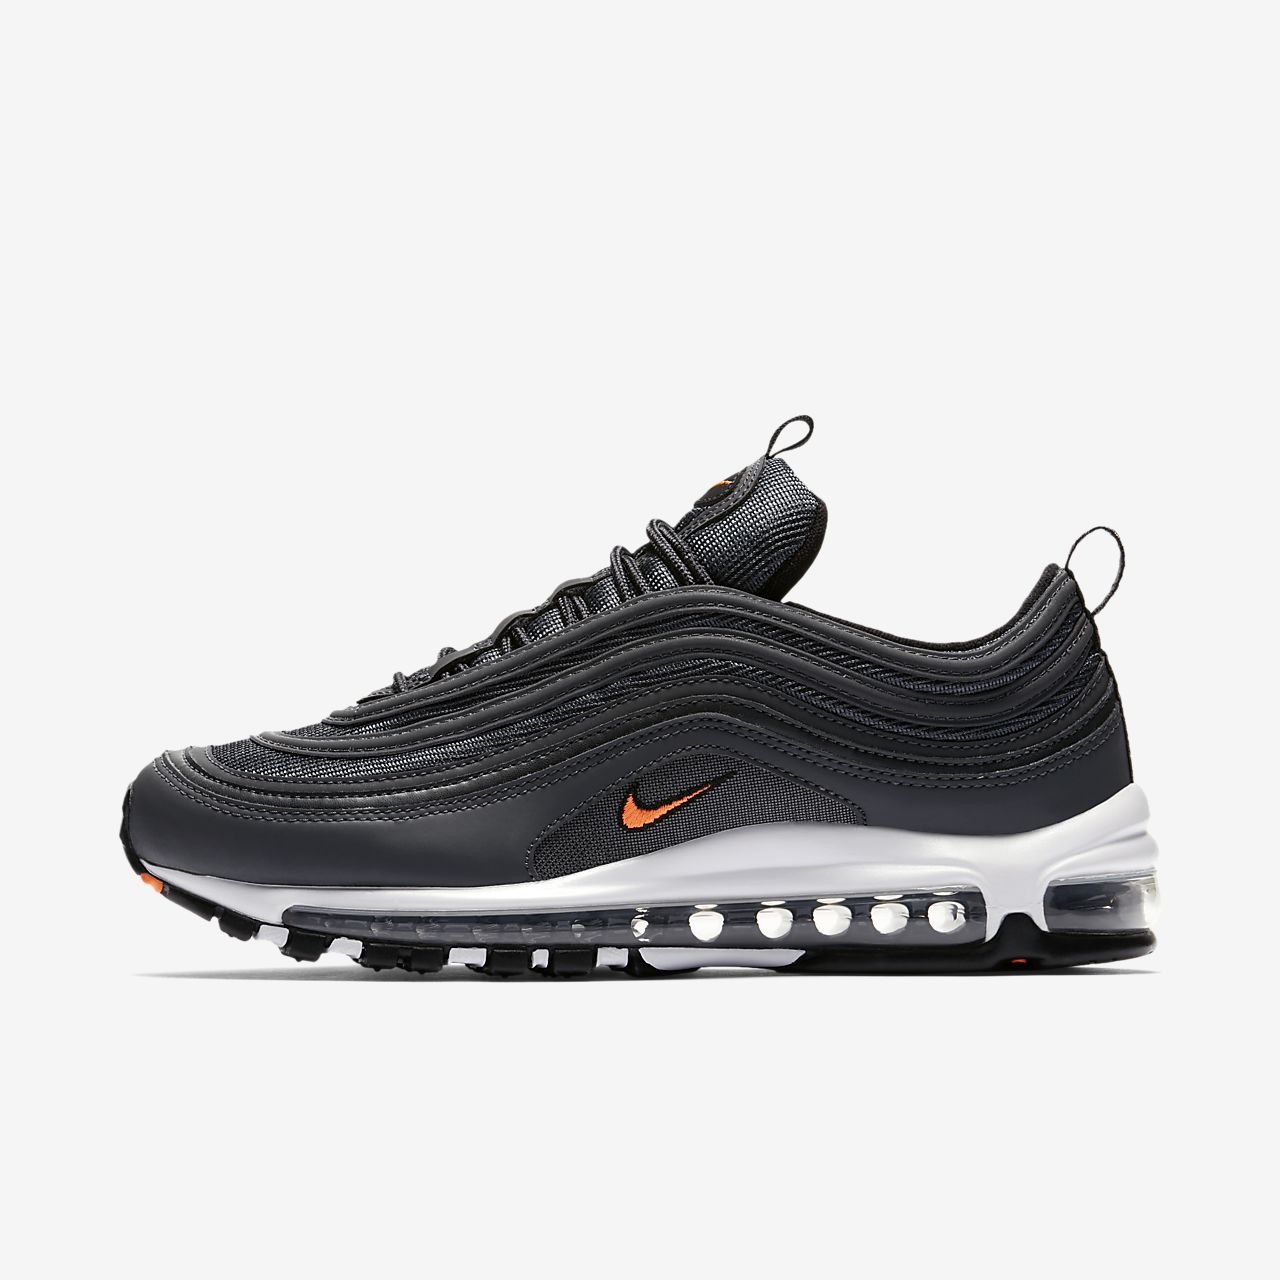 low priced 0057c f8031 Nike Air Max 97 Zapatillas - Hombre